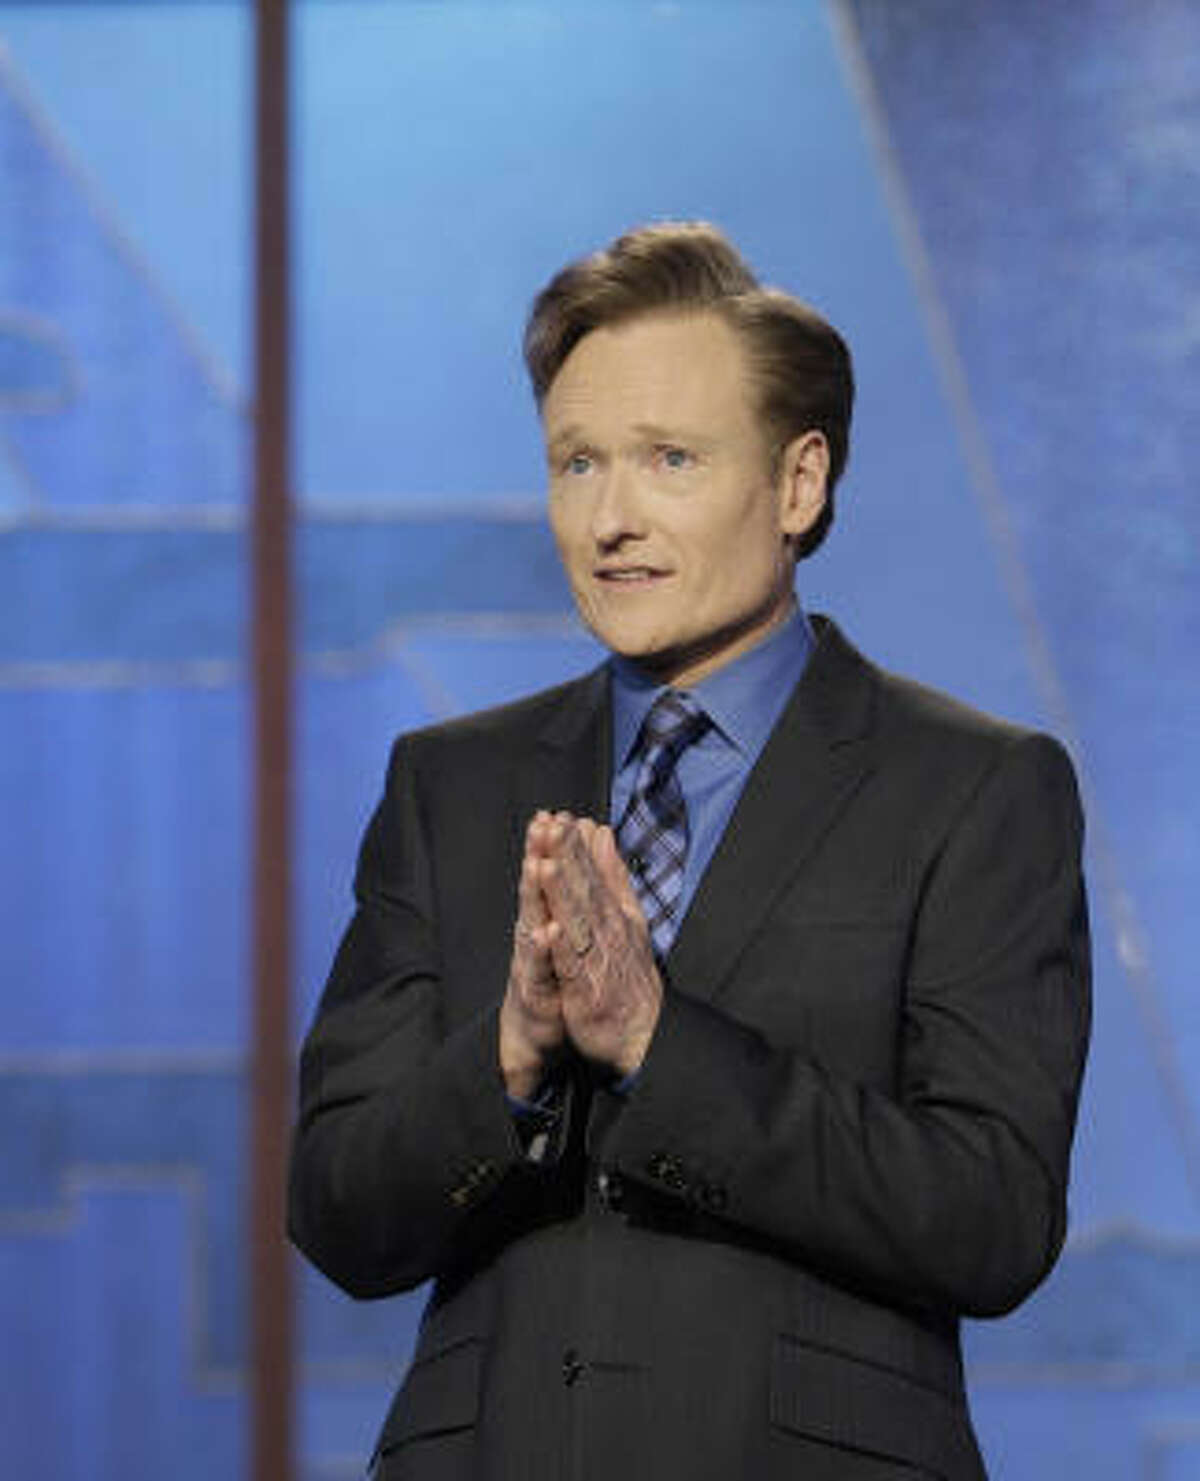 Conan O'Brien appears on his final Tonight Show episode on Friday.